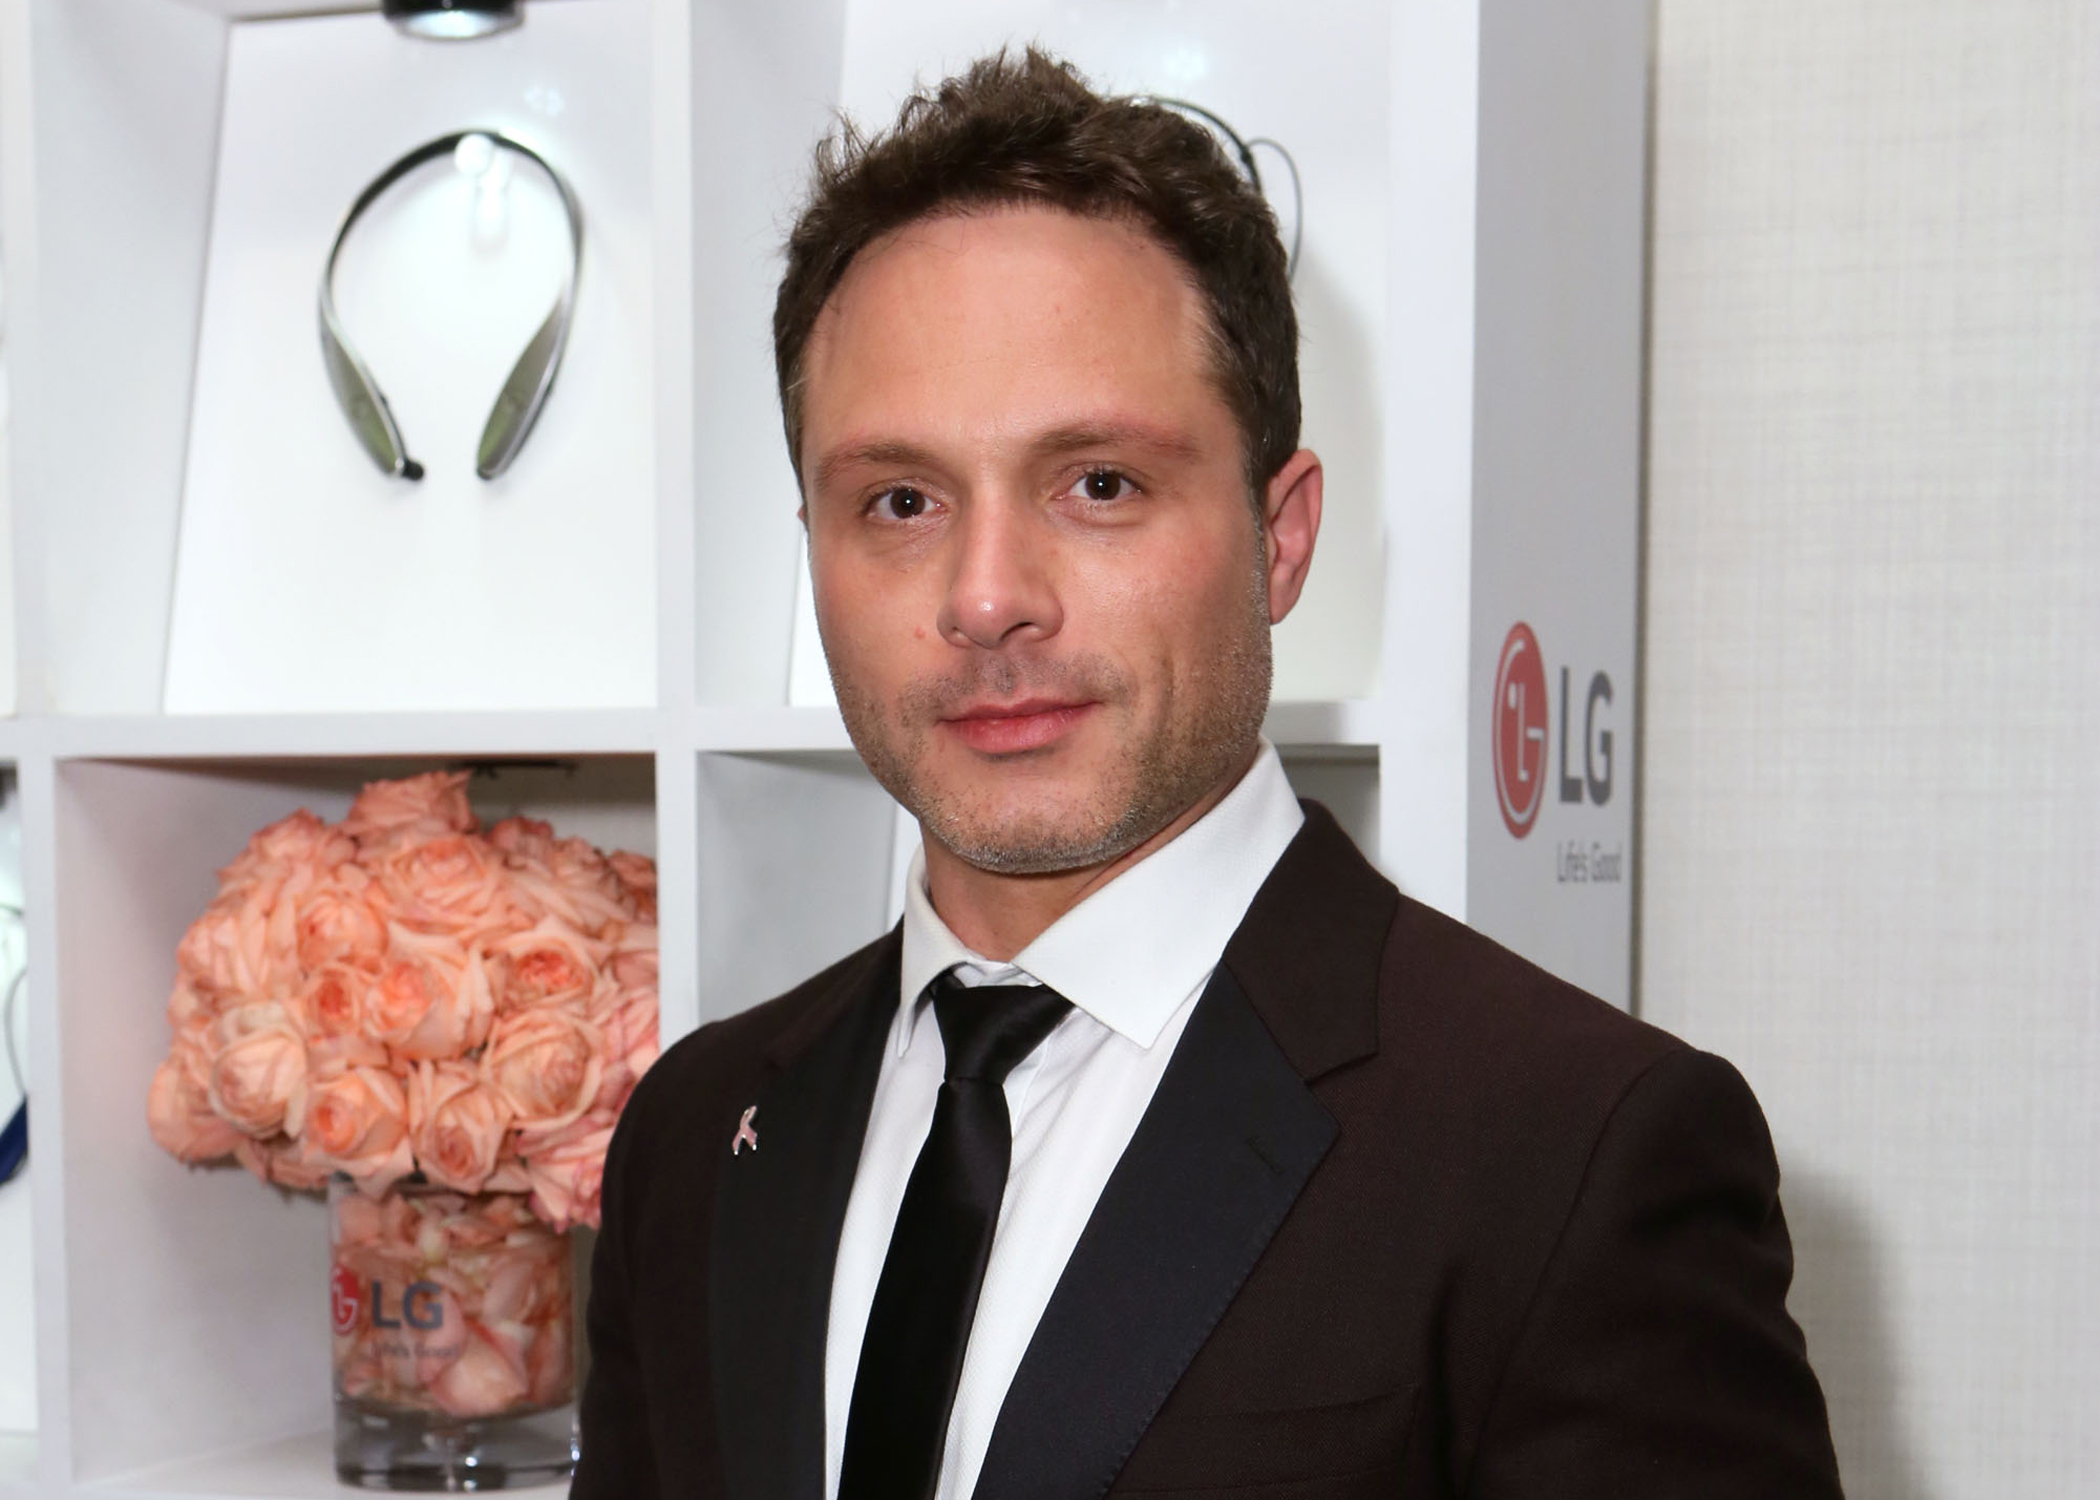 Nic Pizzolatto wearing a suit